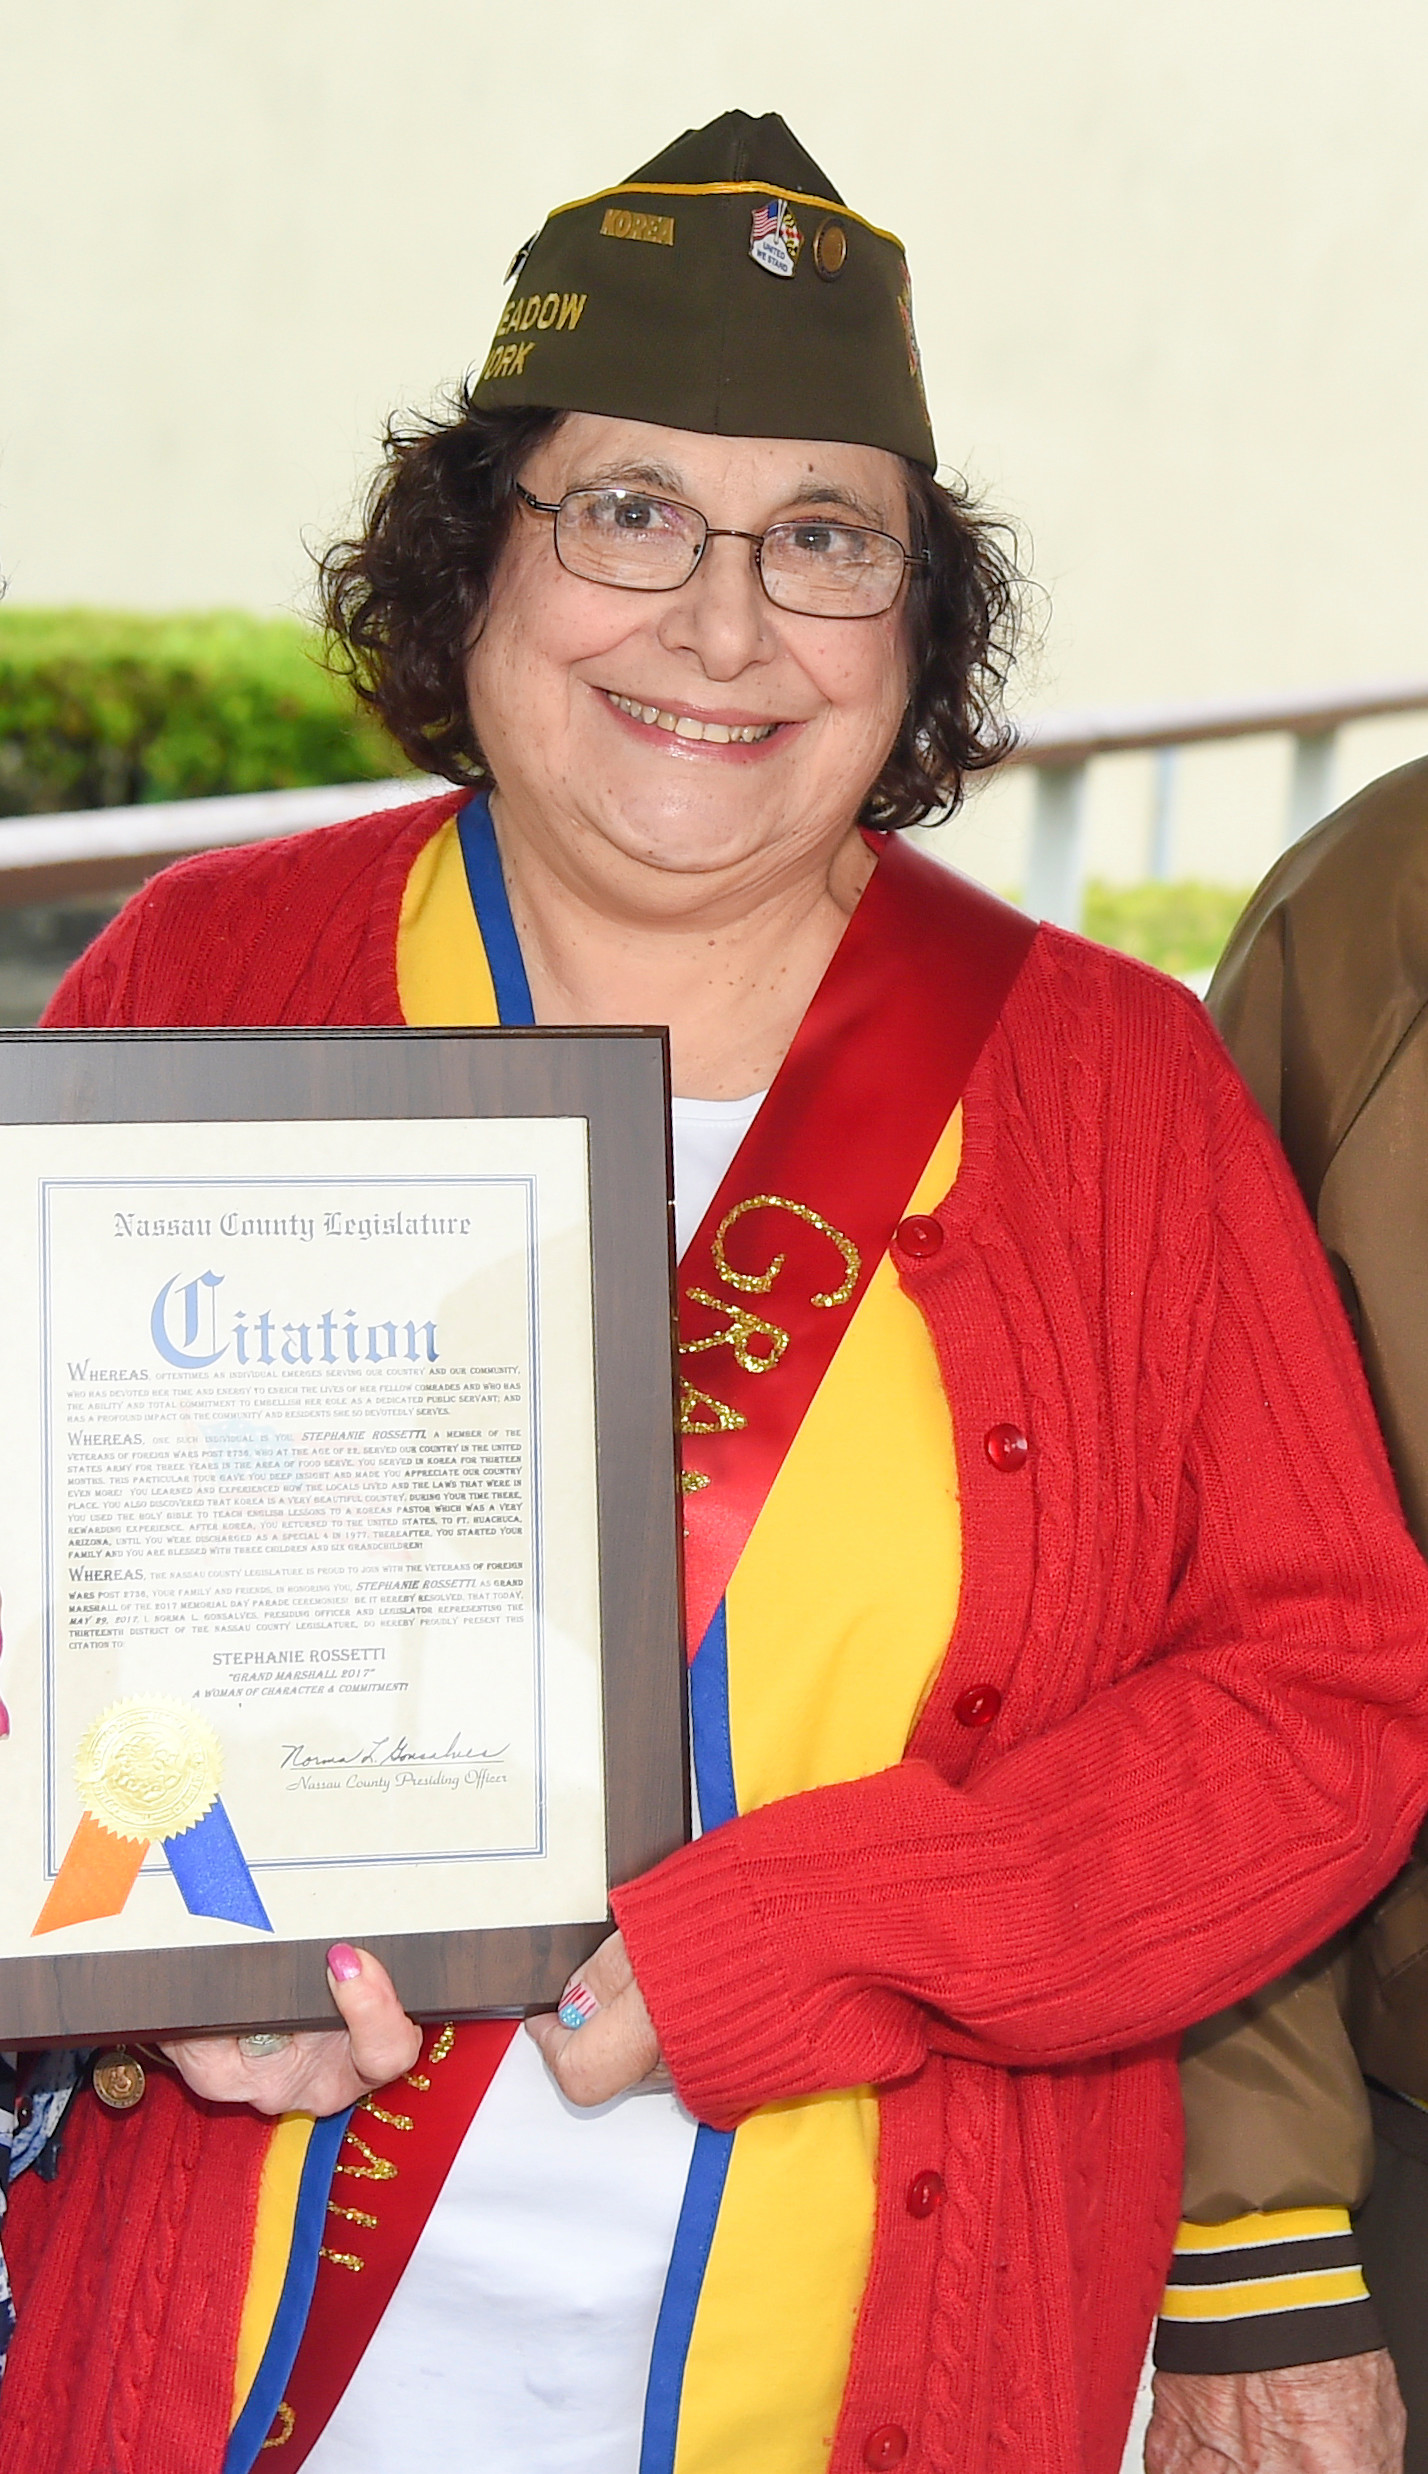 Stephanie Rossetti, who was the first female grand marshal in East Meadow's Memorial Day Parade history, received a citation from the Town of Hempstead for her service.